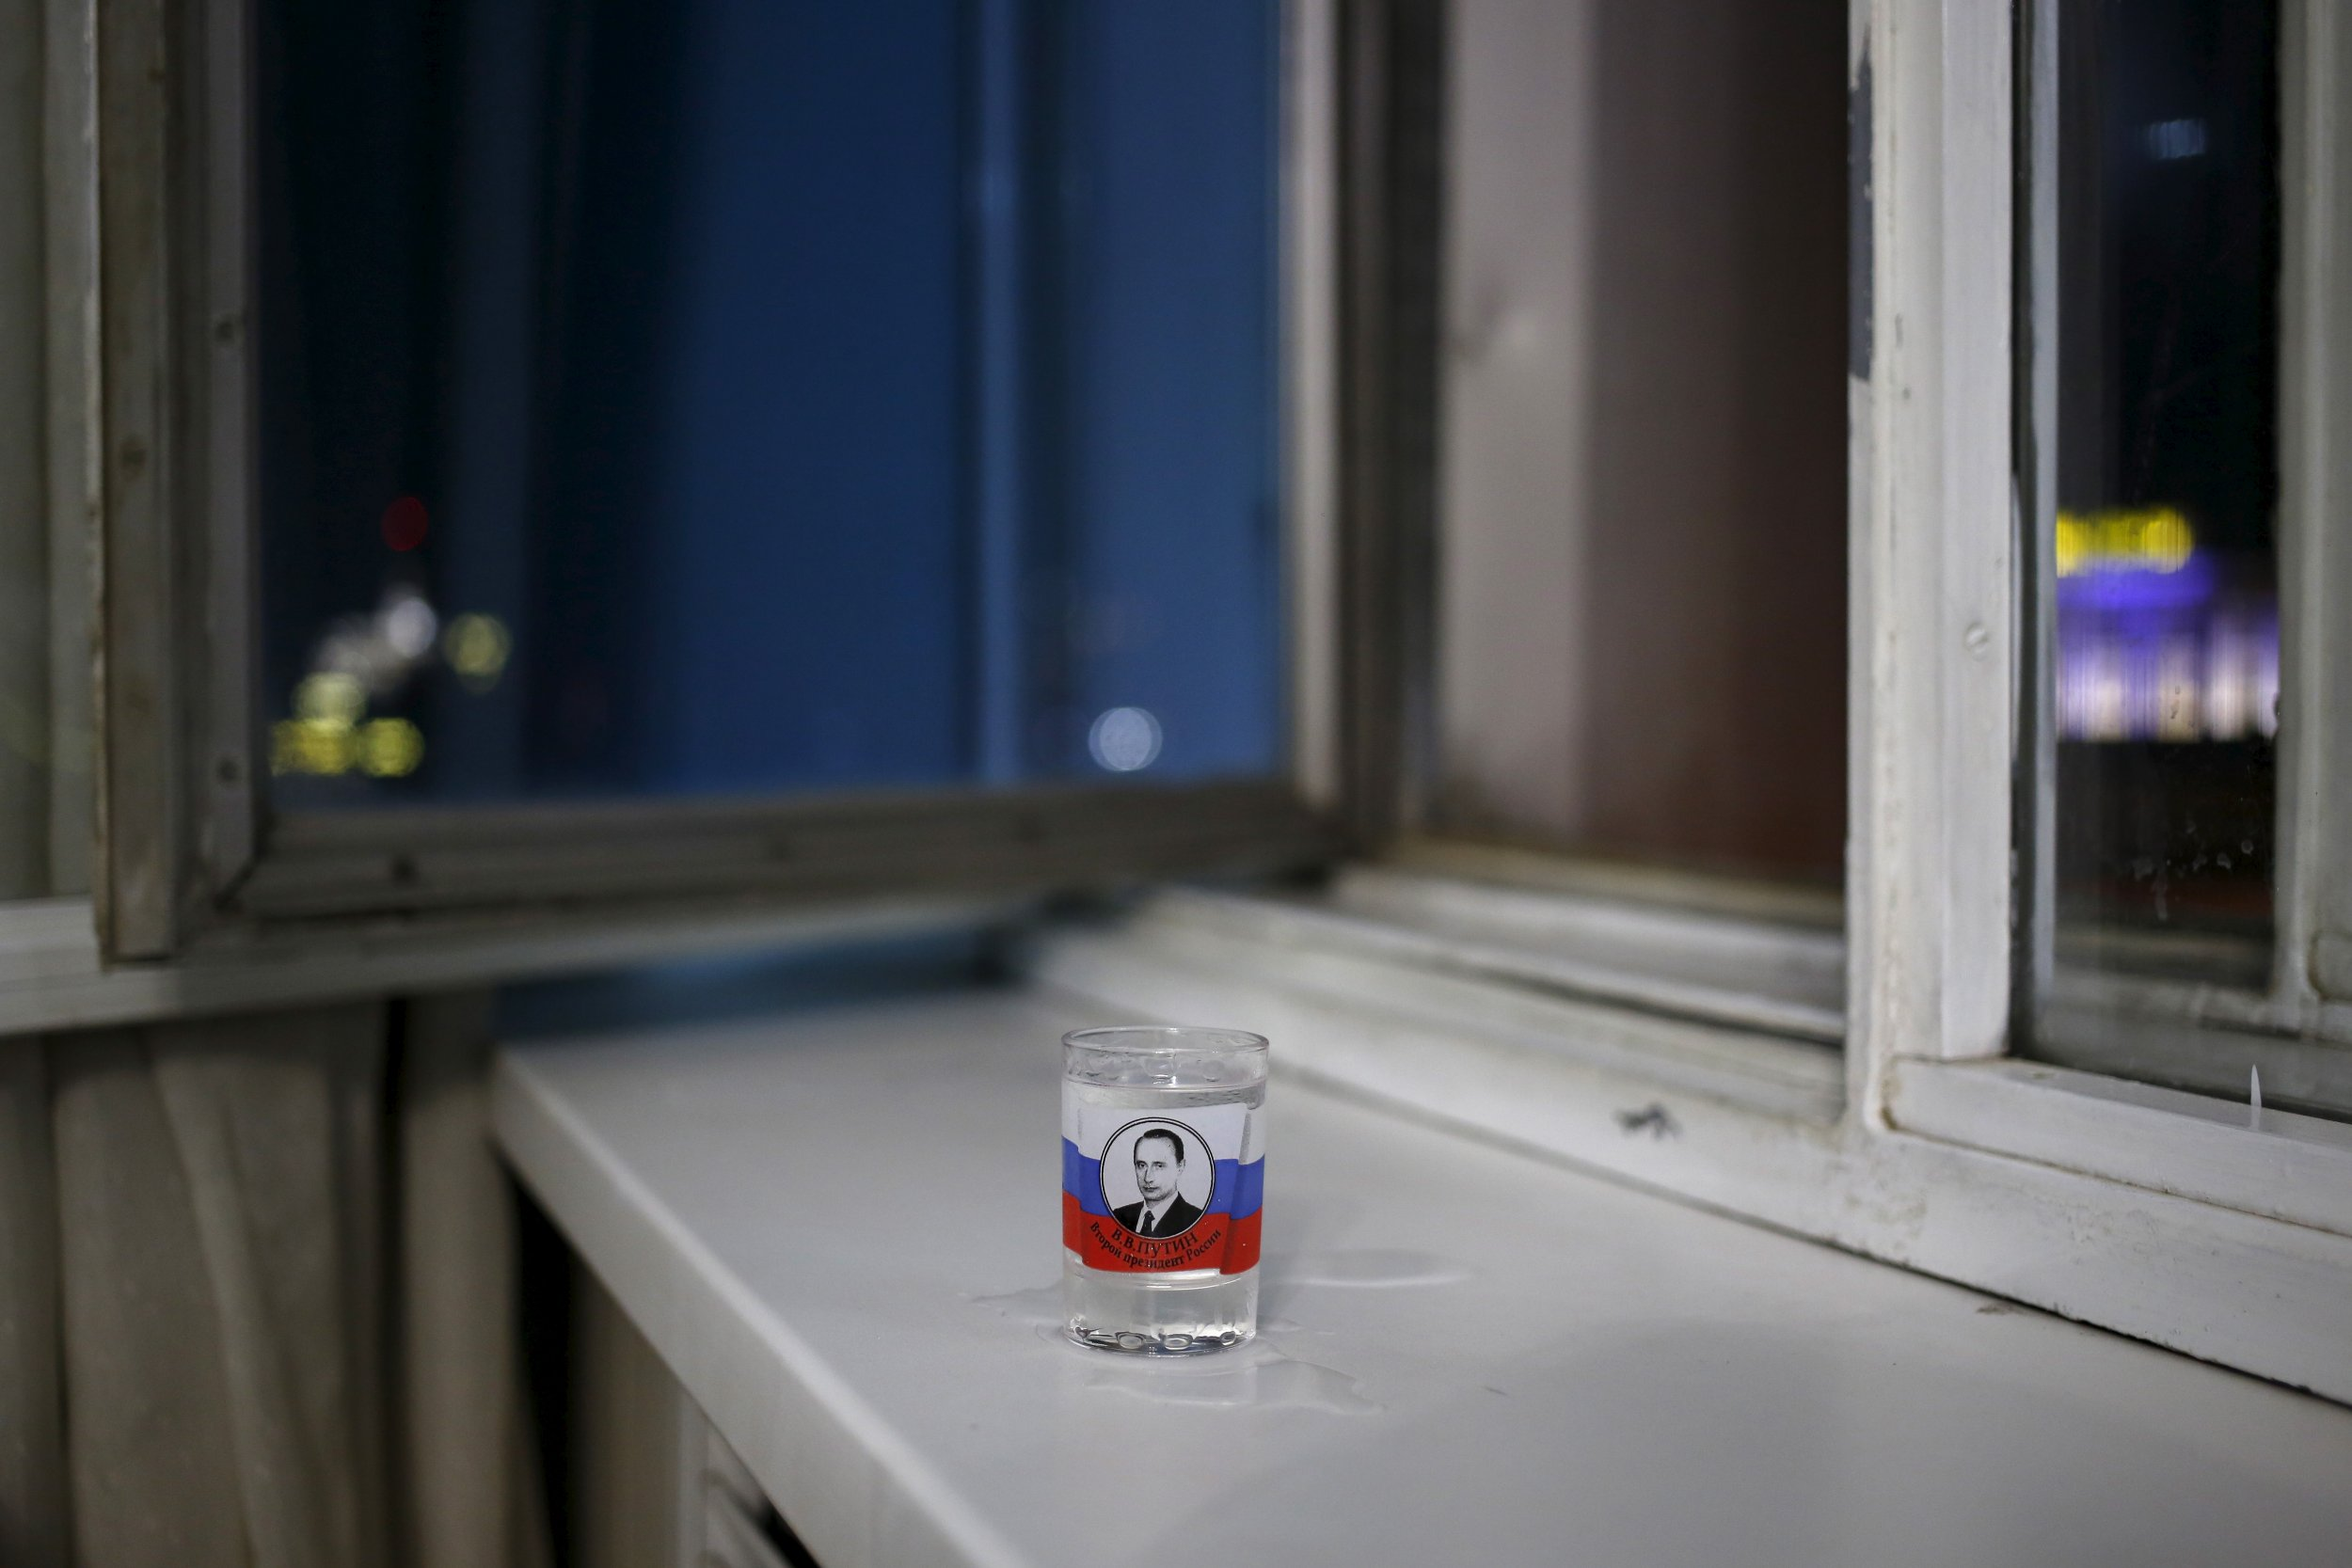 Putin Vodka glass